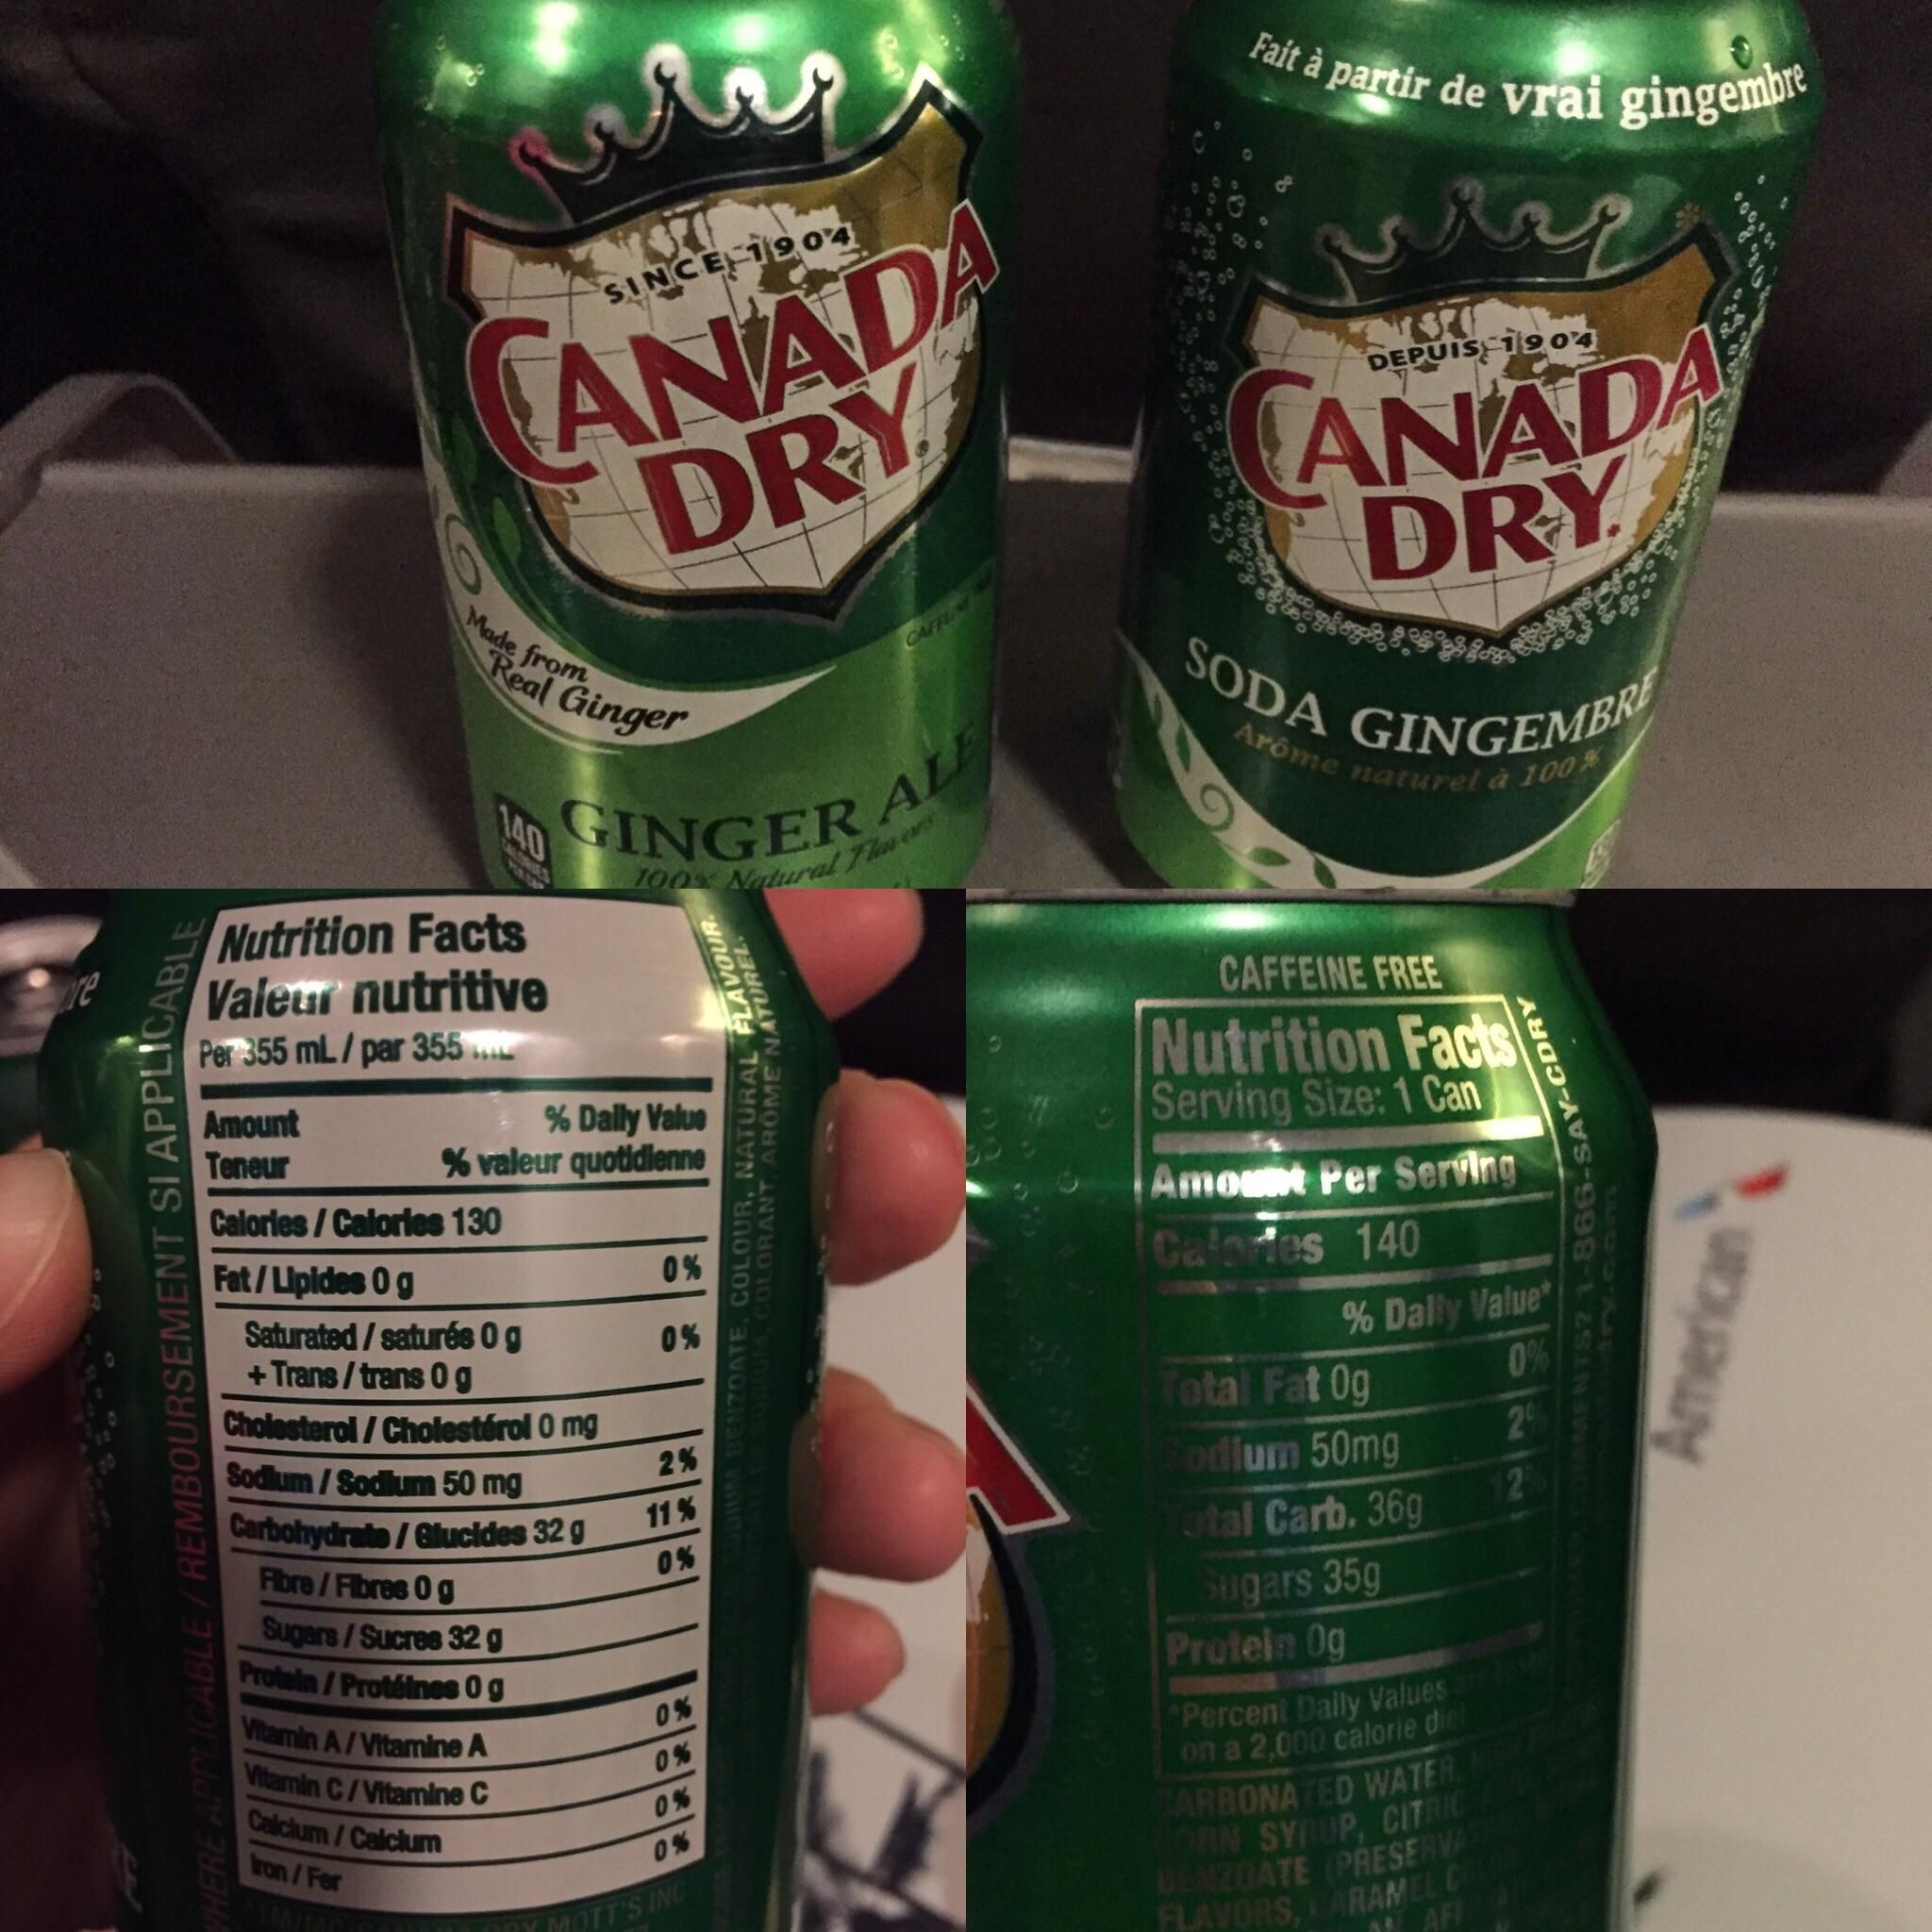 On Our Flight My Girlfriend Received An American Ginger Ale And I Got The French Version The American Version Canada Dry Ginger Ale Ginger Ale Nutrition Facts